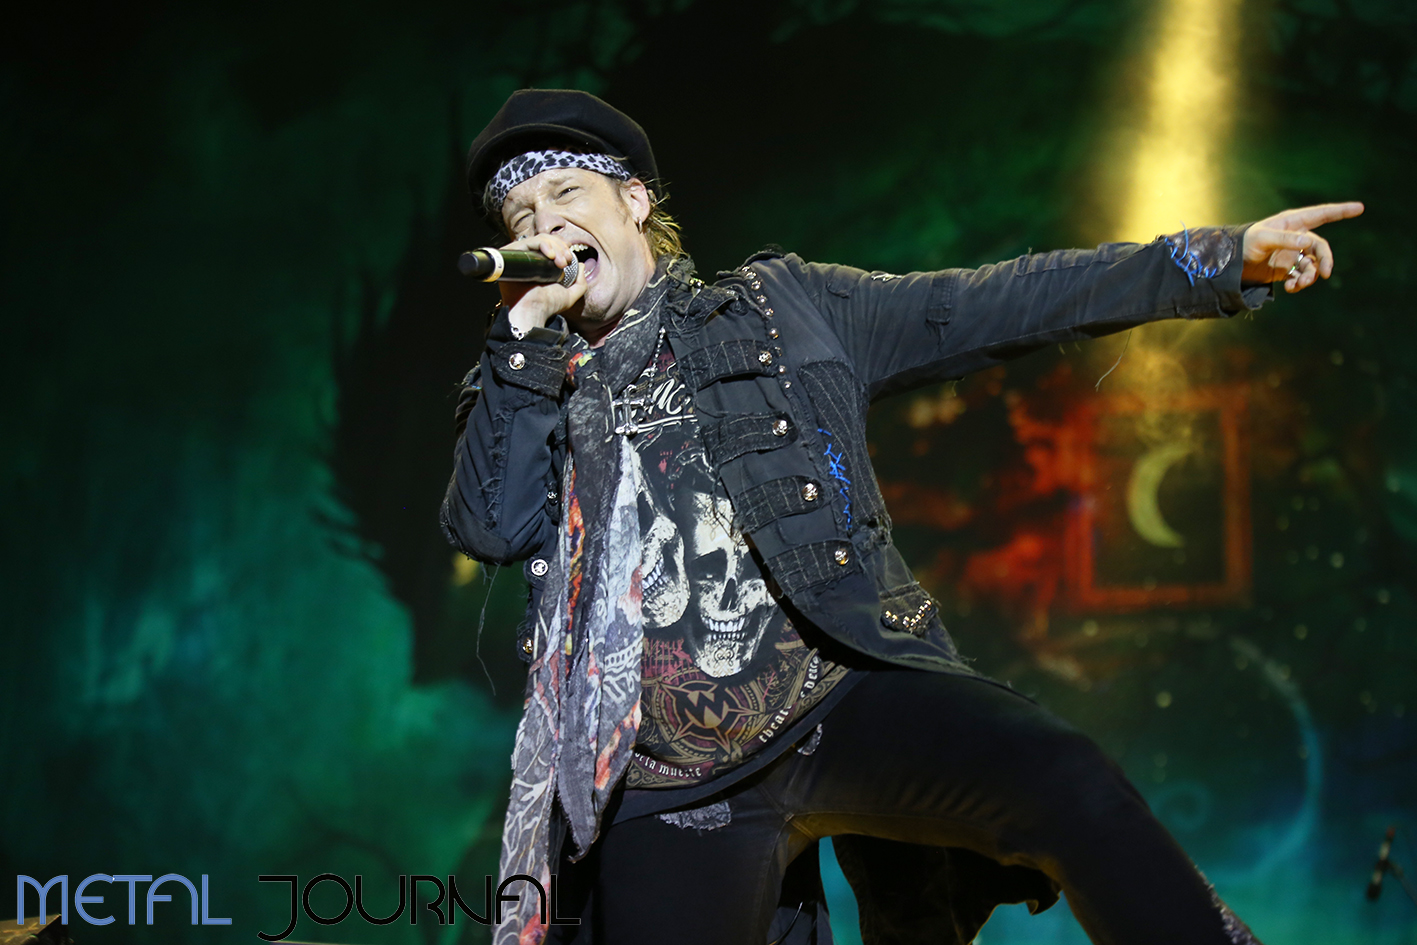 avantasia- leyendas del rock 2019 metal journal pic 6